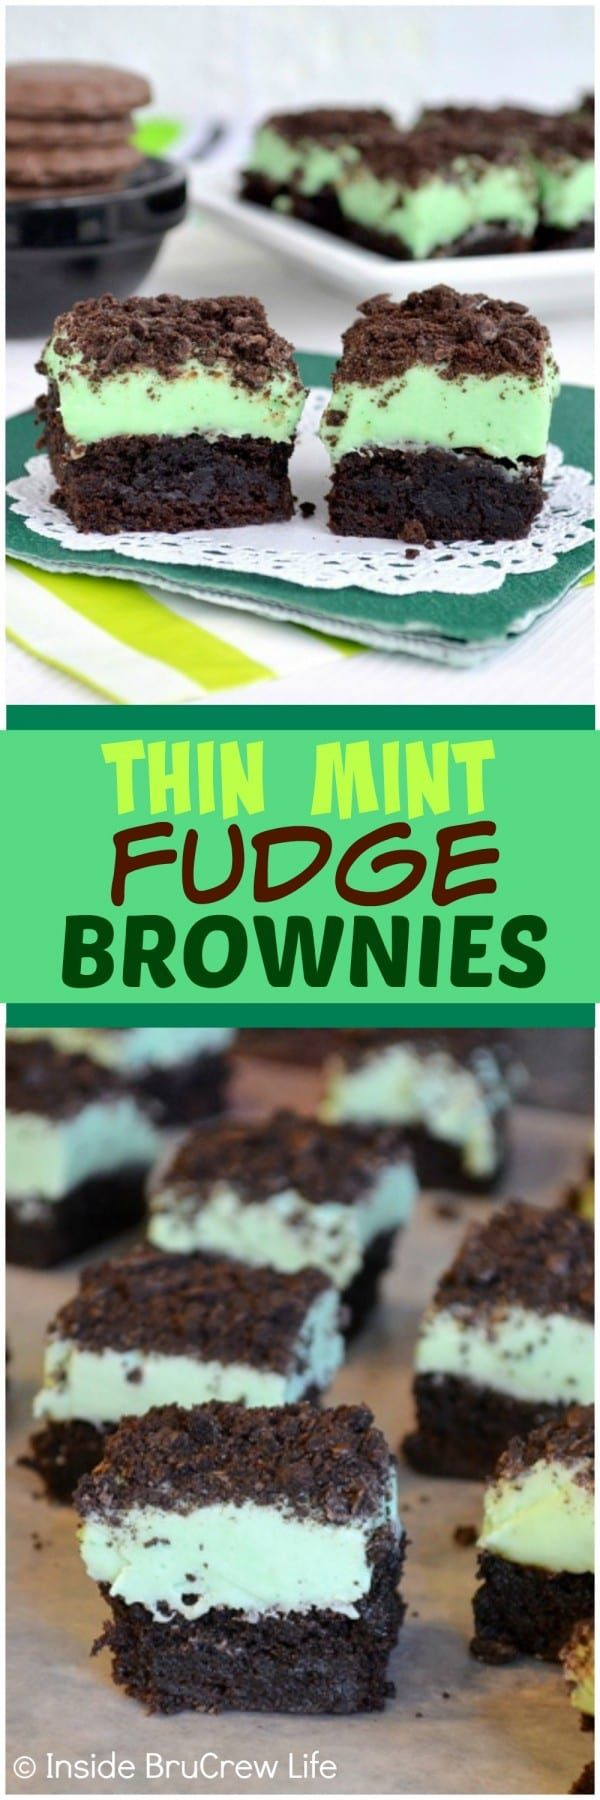 Thin Mint Fudge Brownies - a layer of mint fudge and mint cookies adds a fun taste and texture to these brownies.